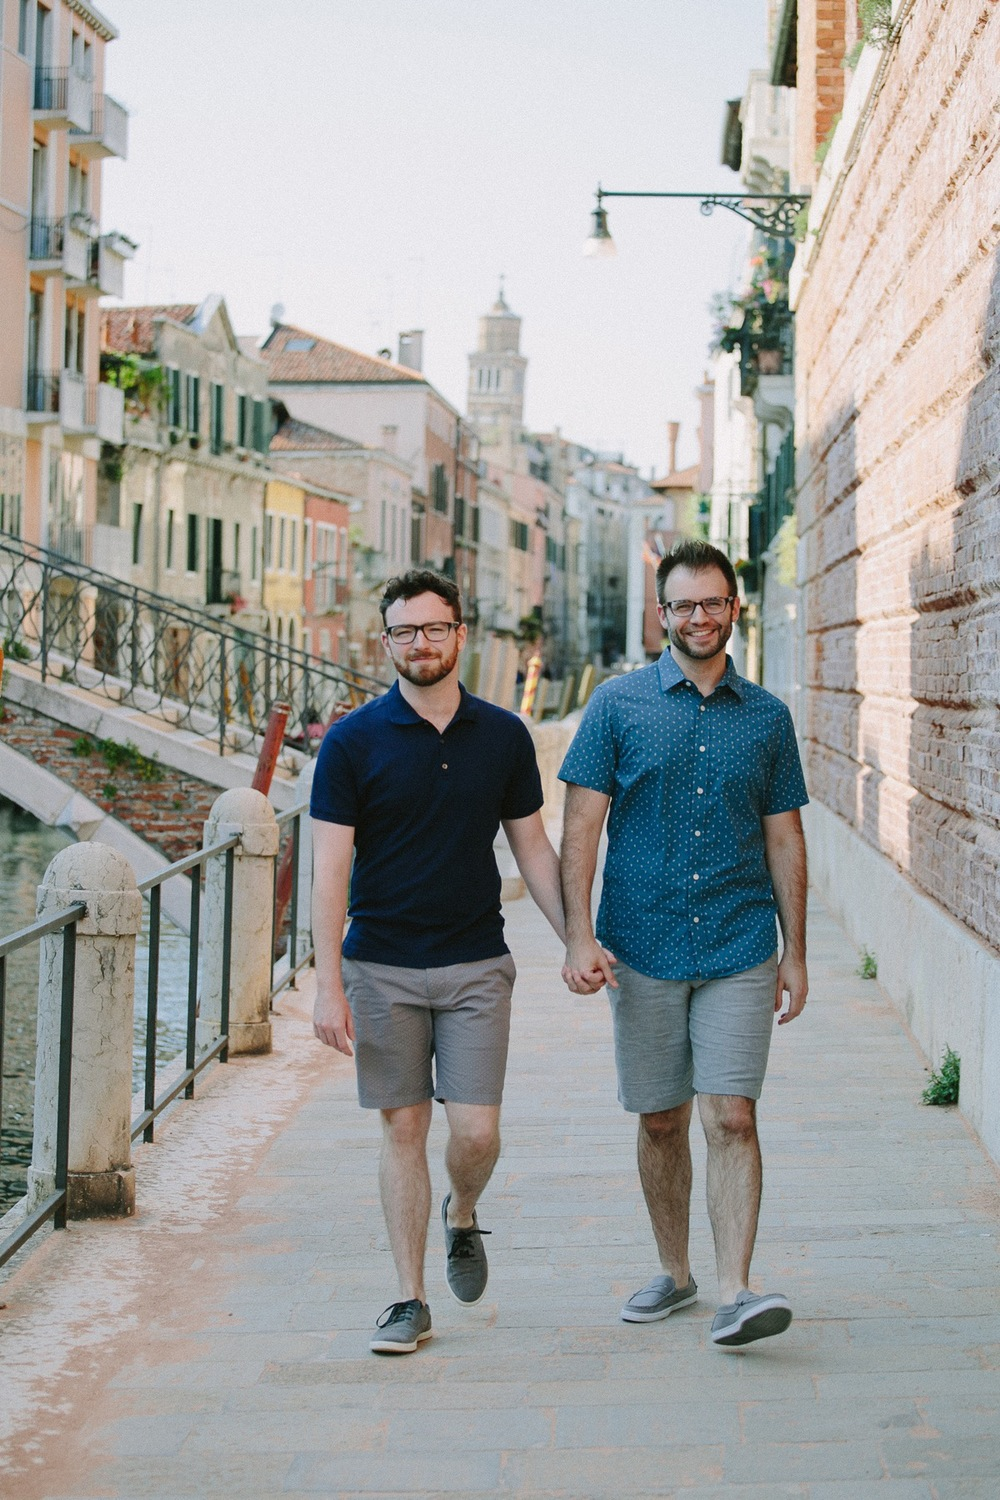 Backpacking Honeymoon through Venice, Italy Photographer: Marta Buso for Flytographer  Click the image to read the full story!